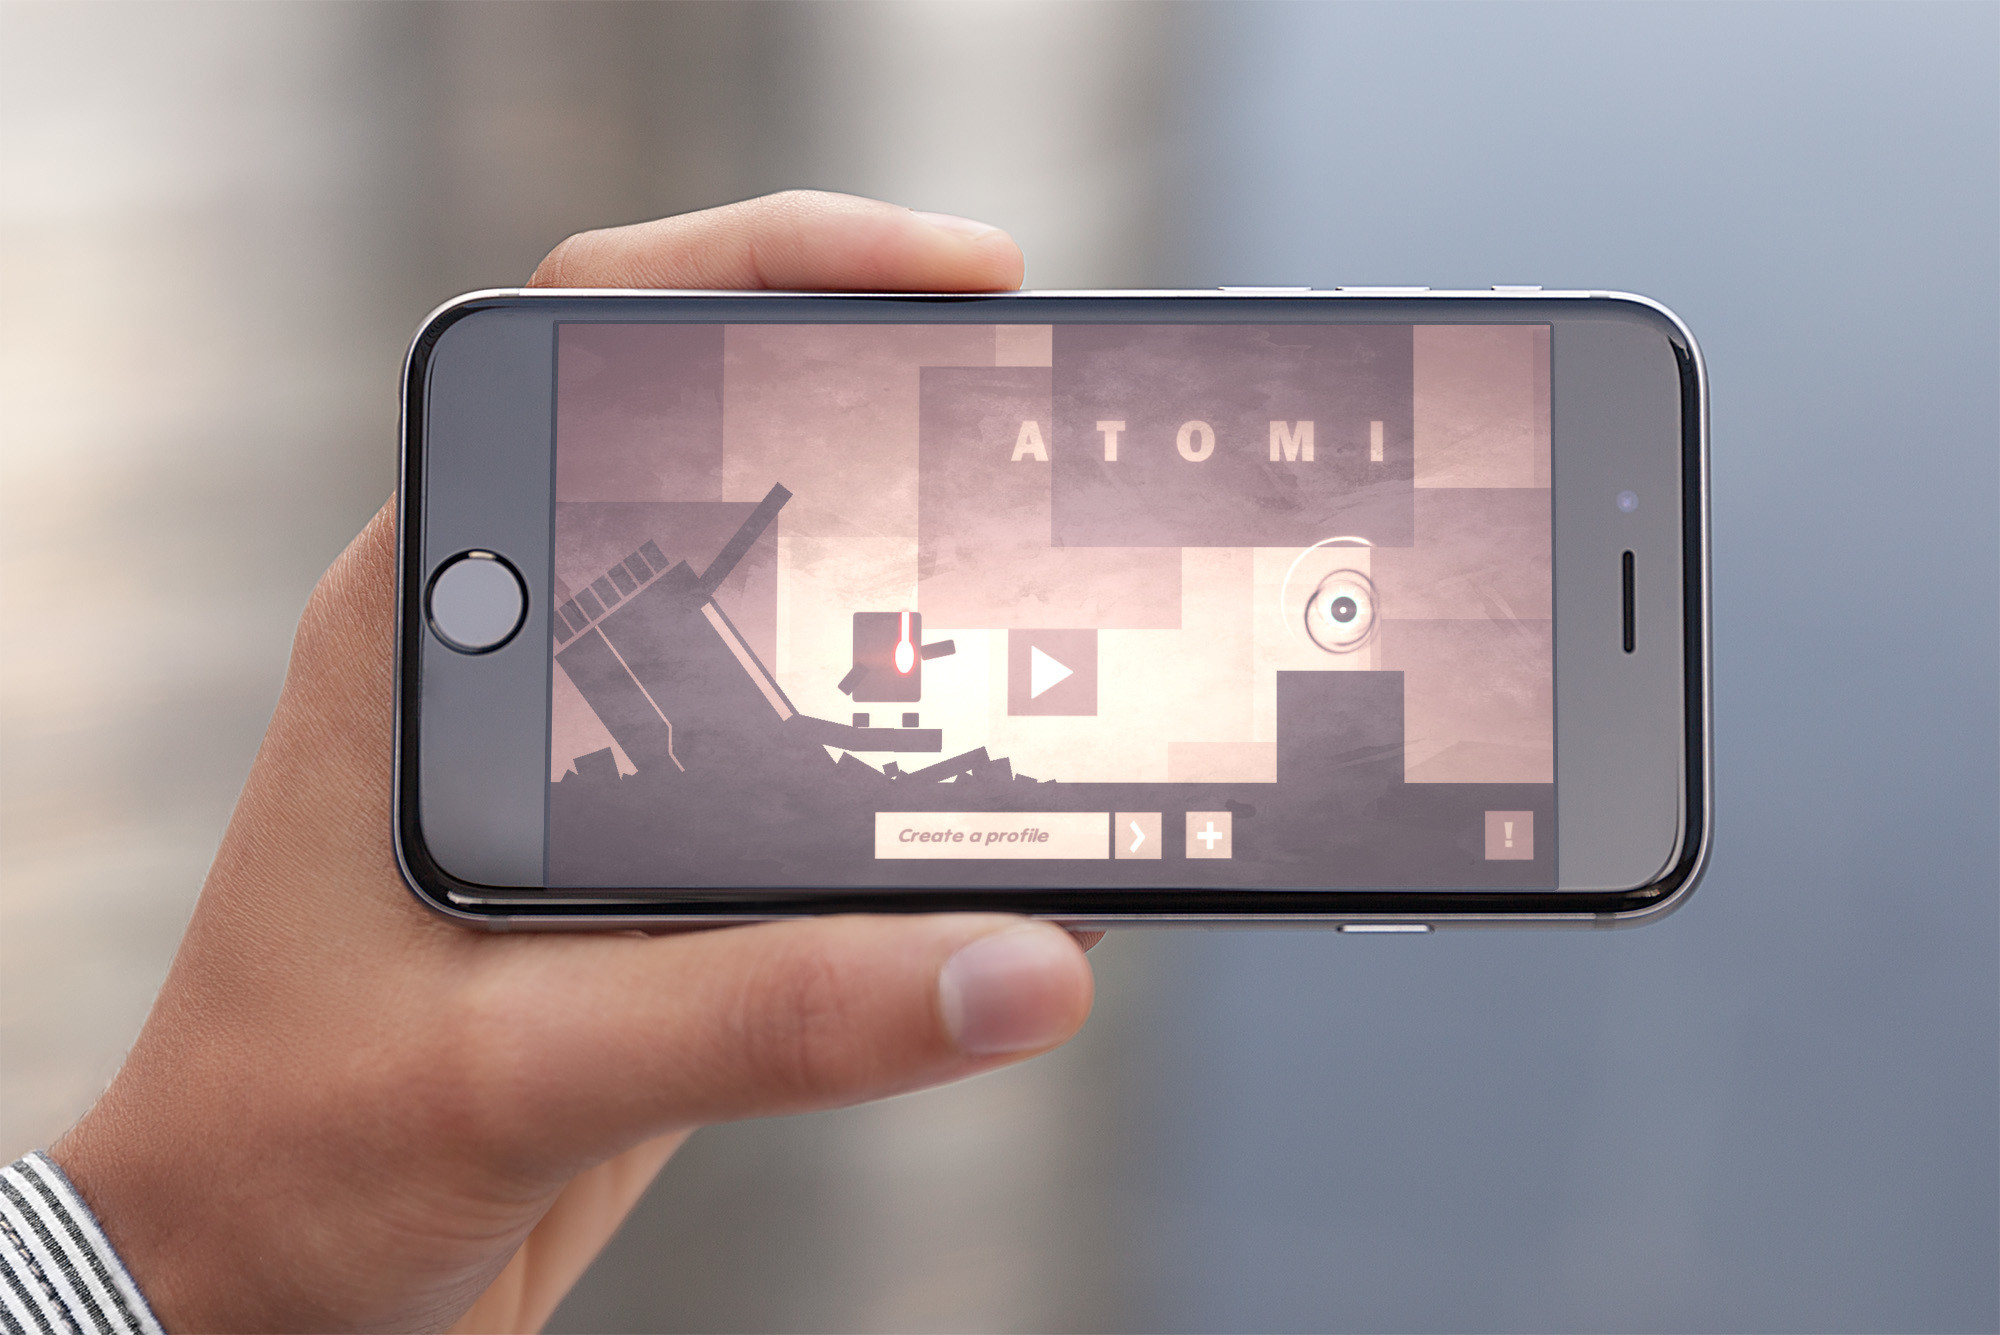 Build a path for Atomi in this beautiful logic puzzle game